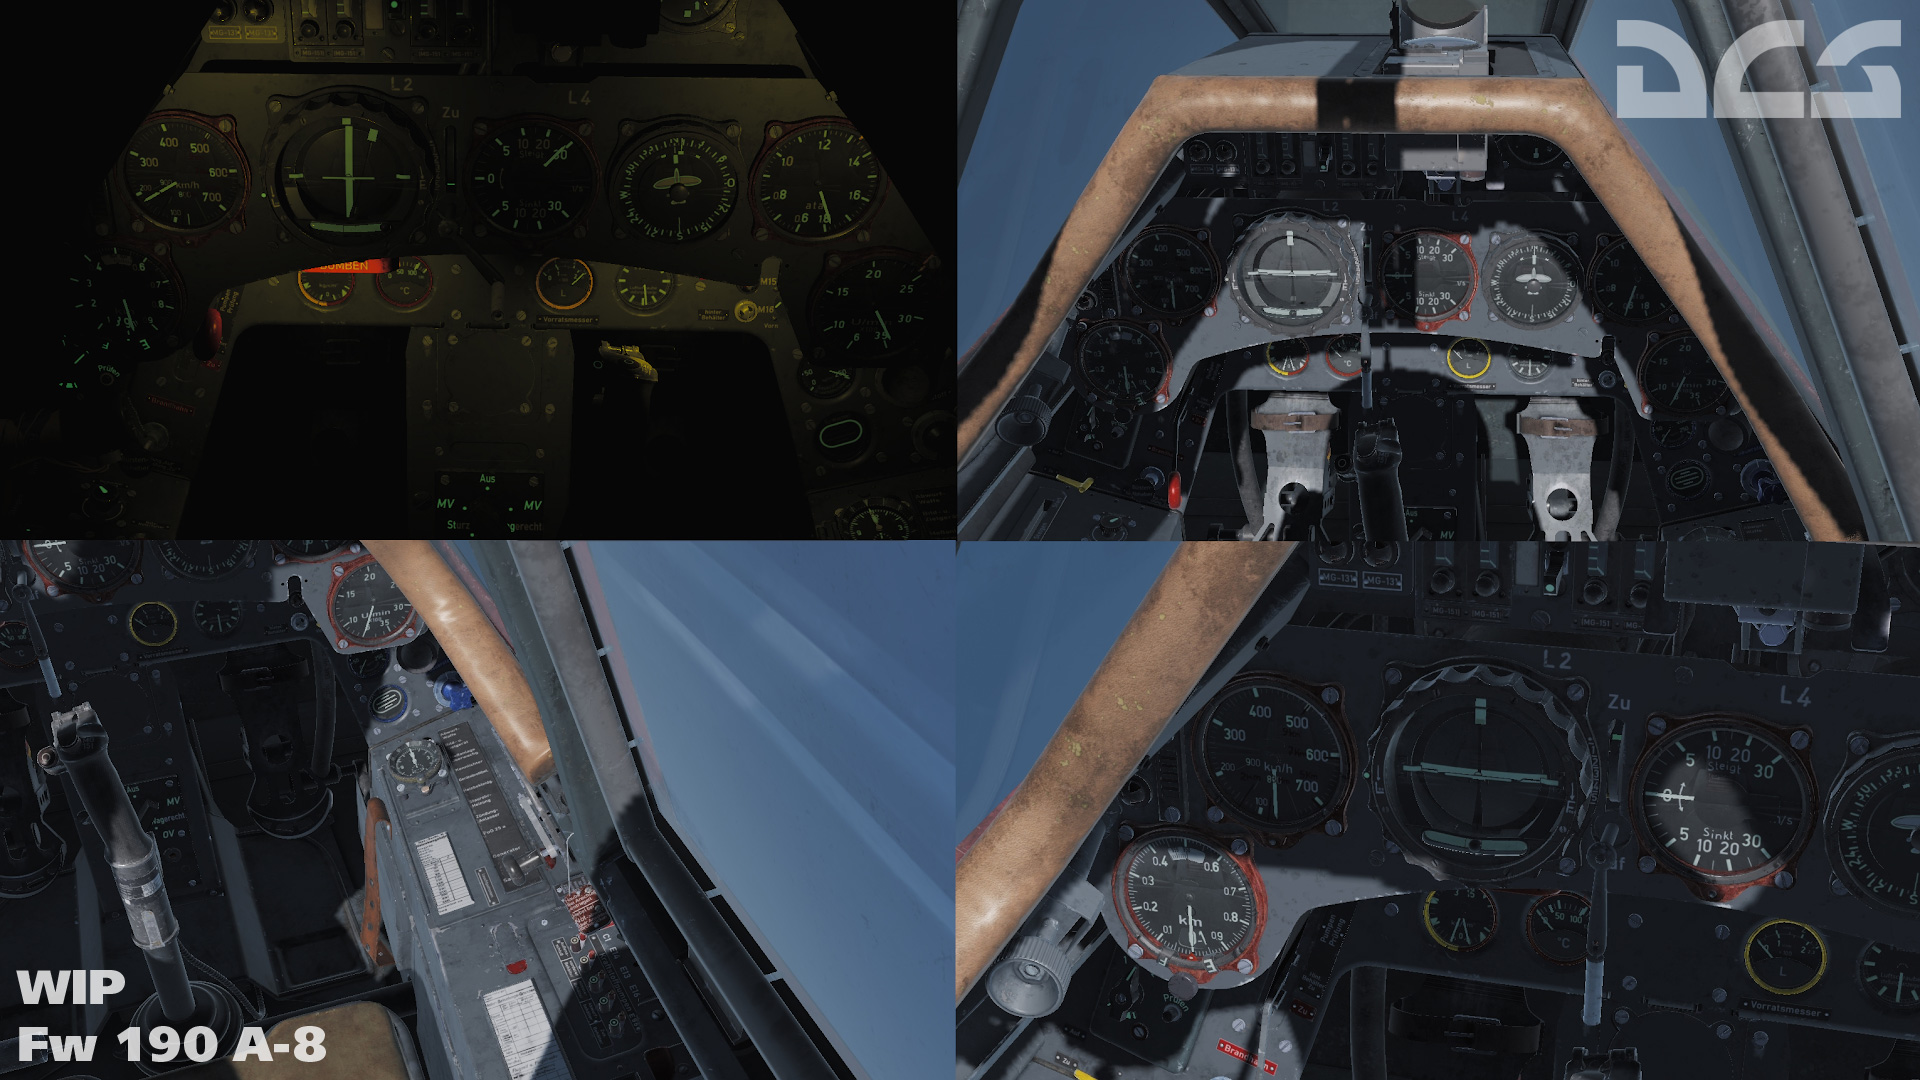 www.digitalcombatsimulator.com/upload/iblock/31b/Fw190A9_cockpit.jpg